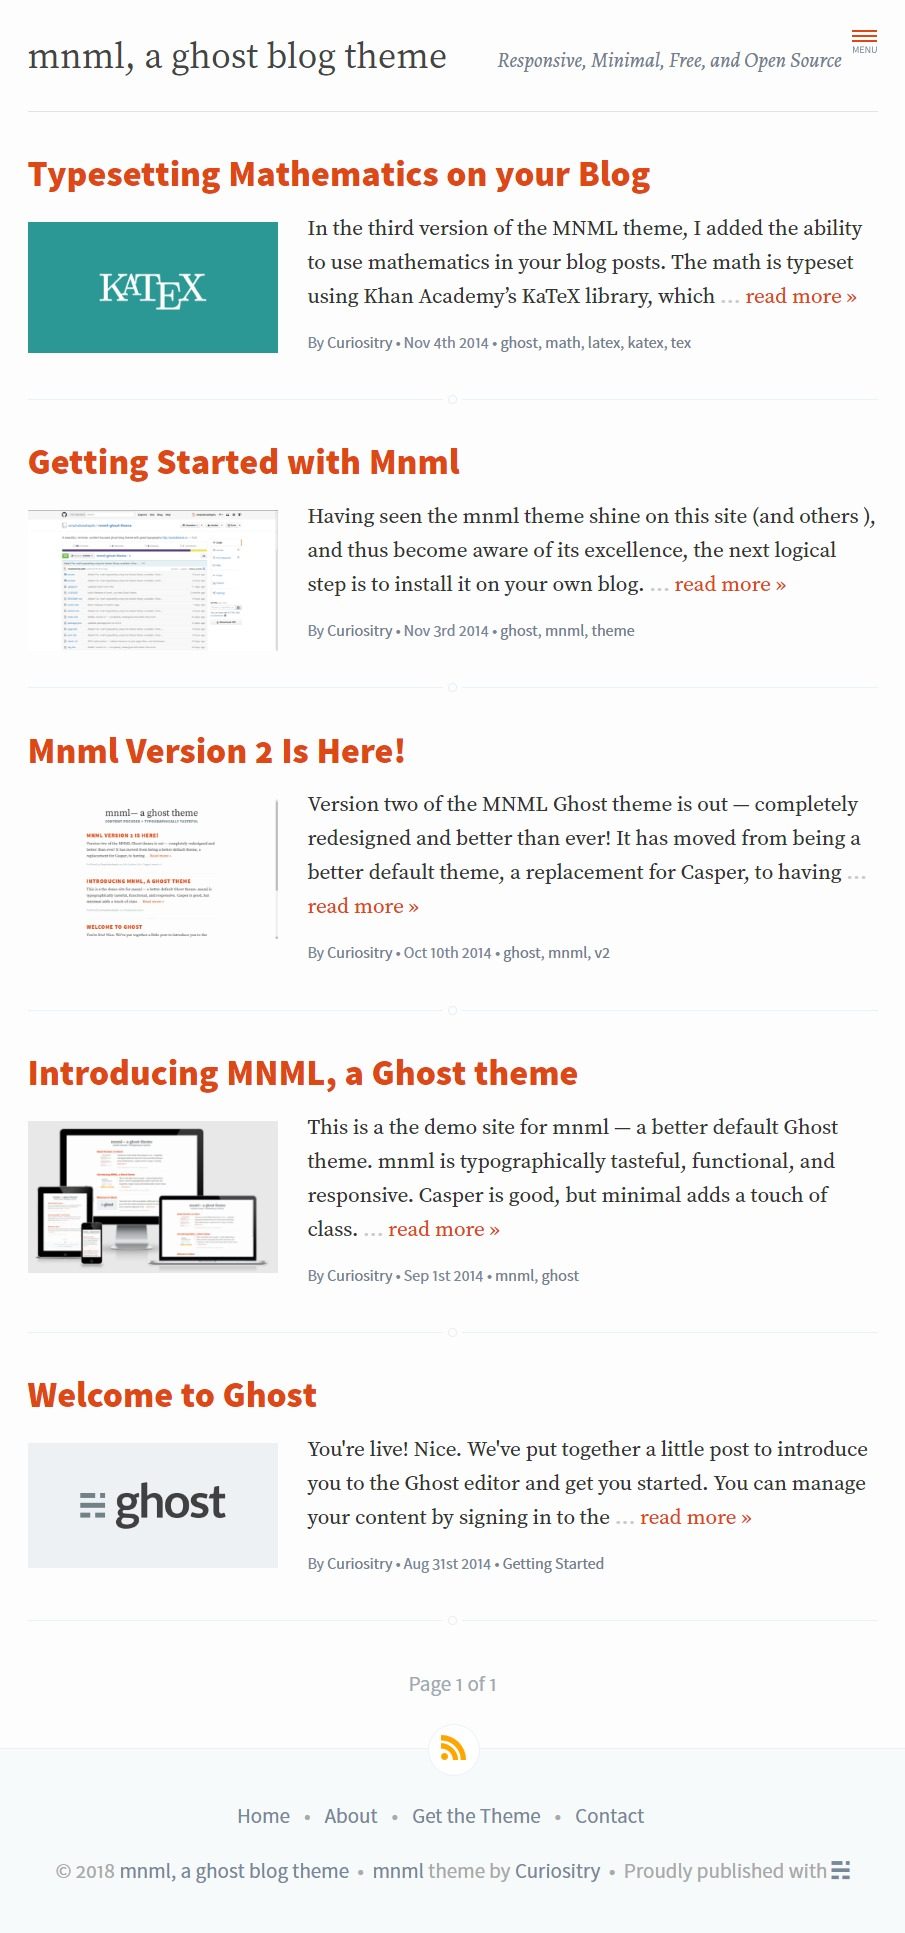 mnml--a-ghost-blog-theme